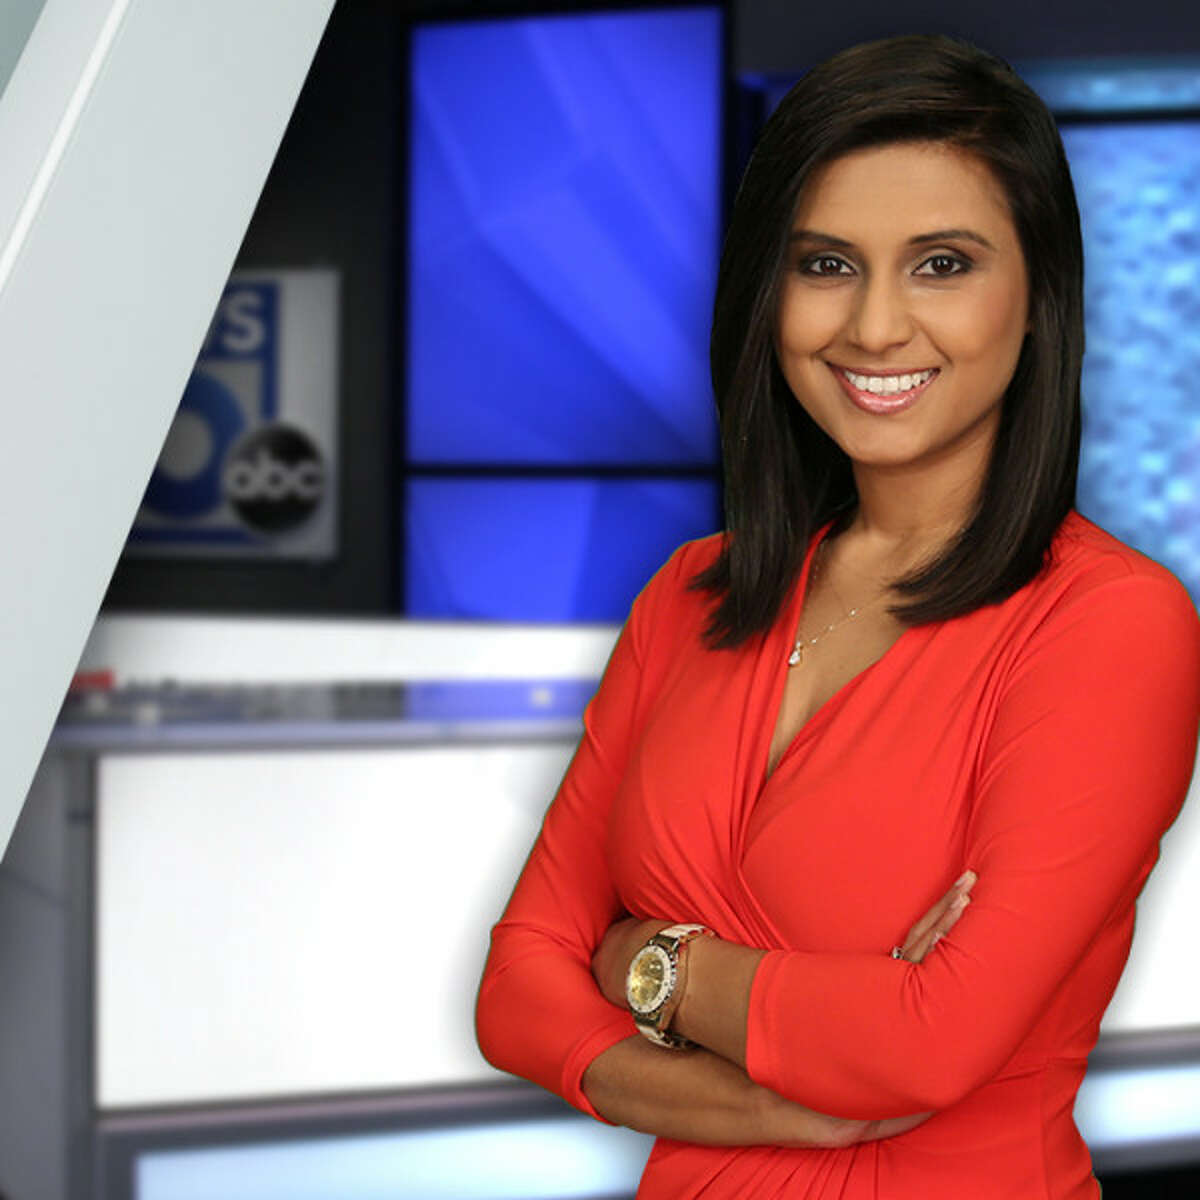 Trishna Begam has been named the 11 p.m. anchor at WTEN/News10ABC.